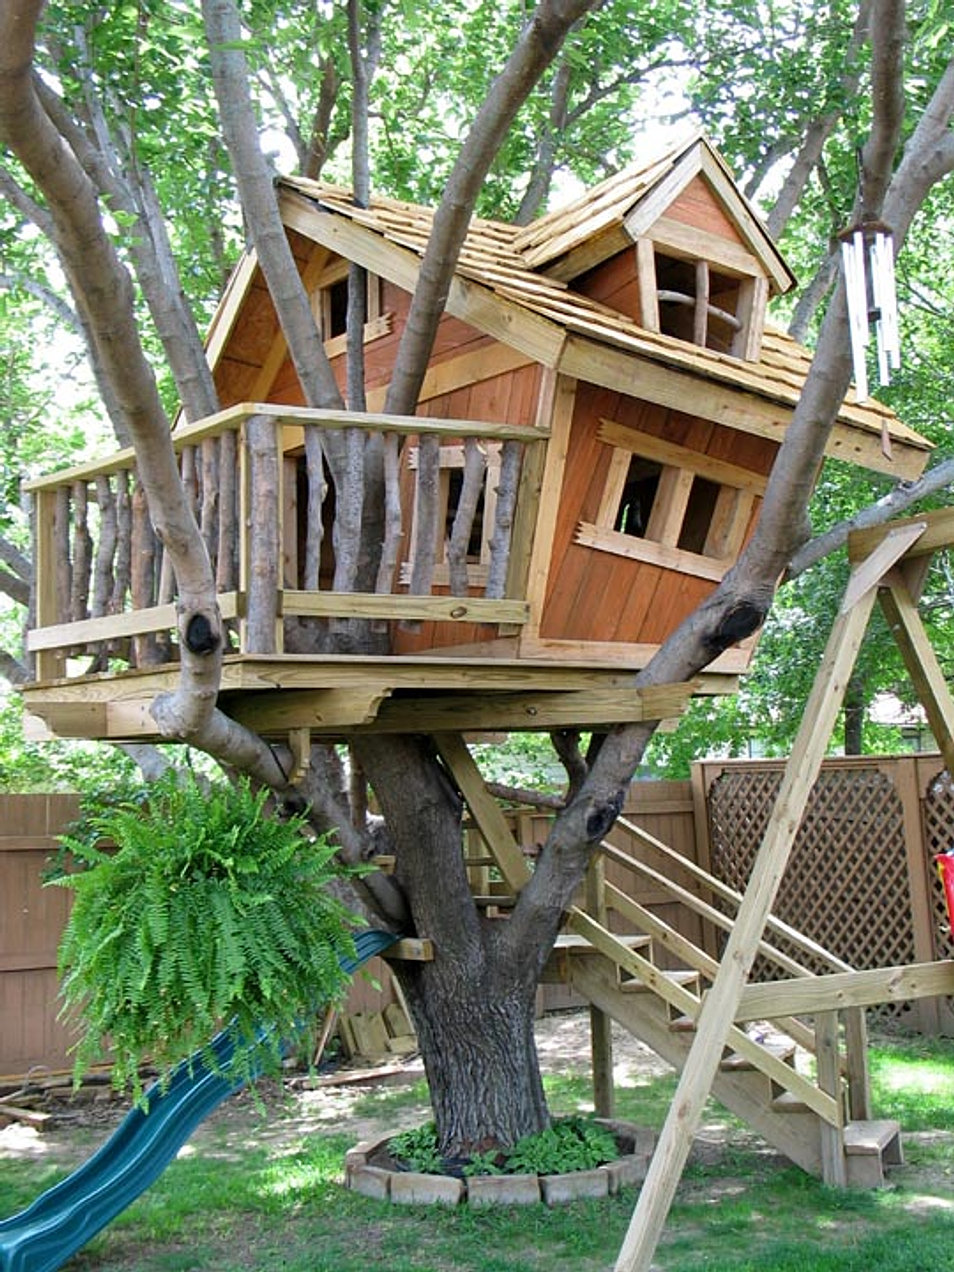 Backyard Treehouse Builders : We build this tree house on your site for $7,450